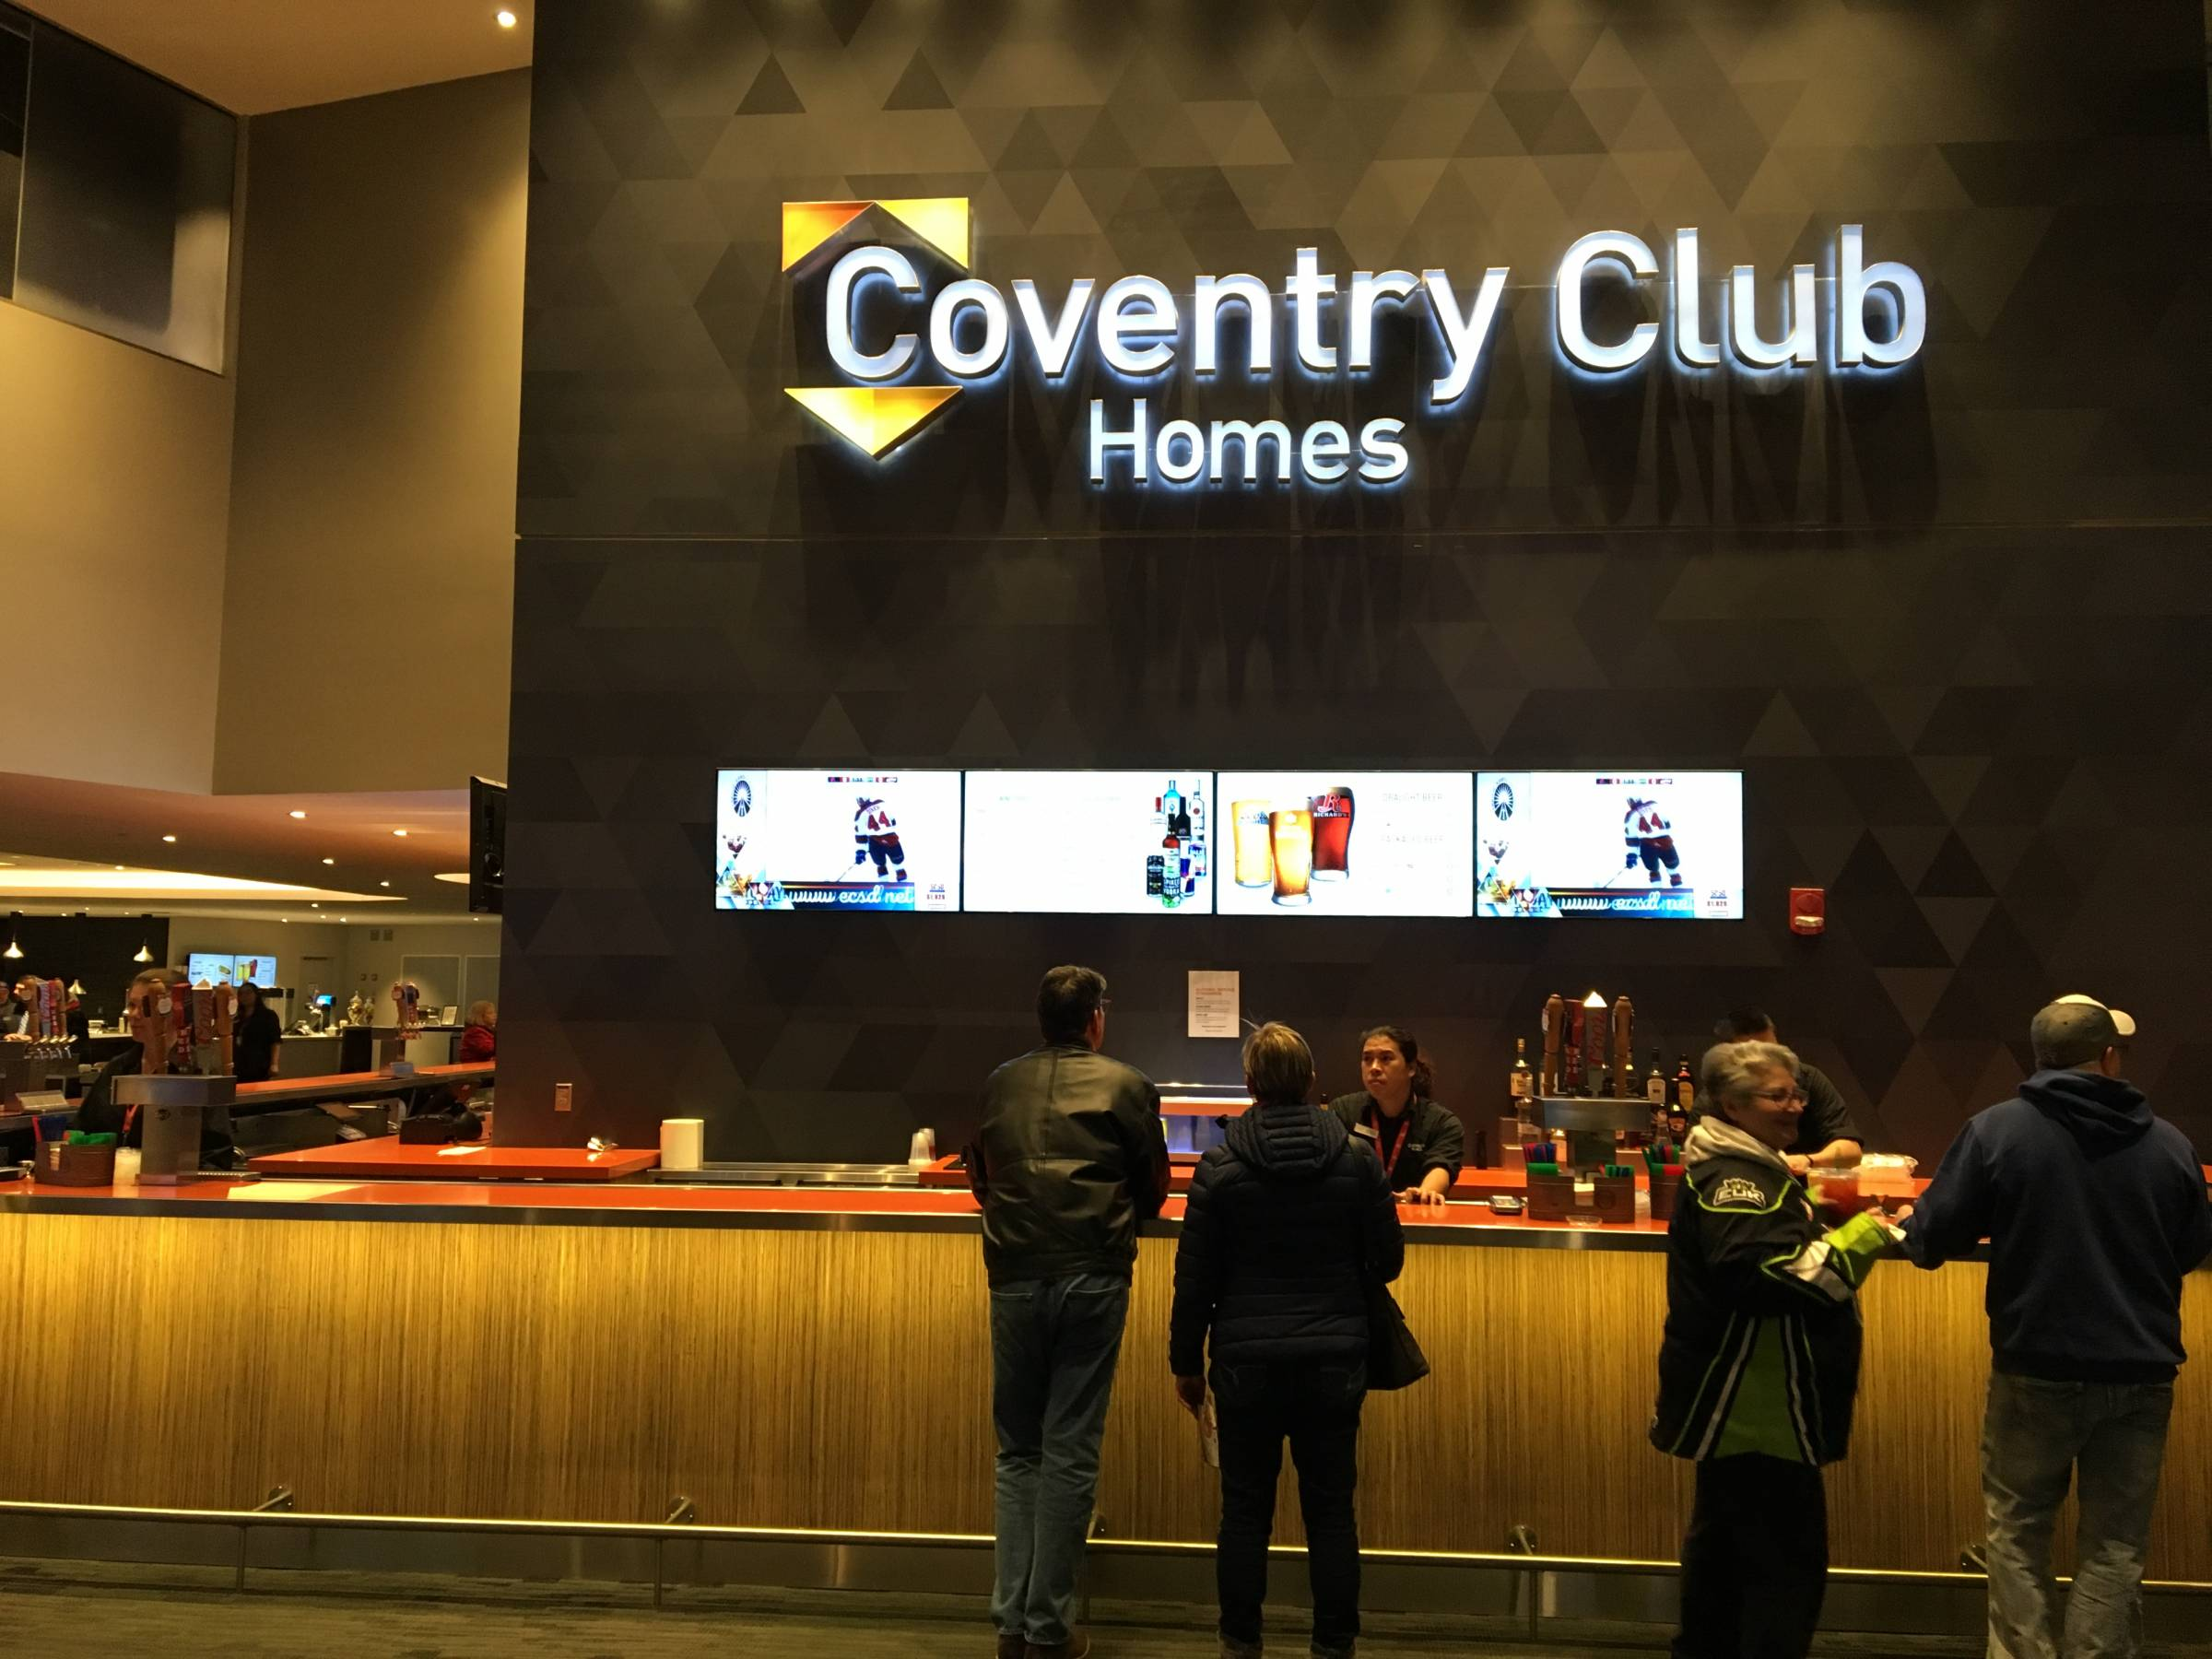 Coventry Home Club at Rogers Place